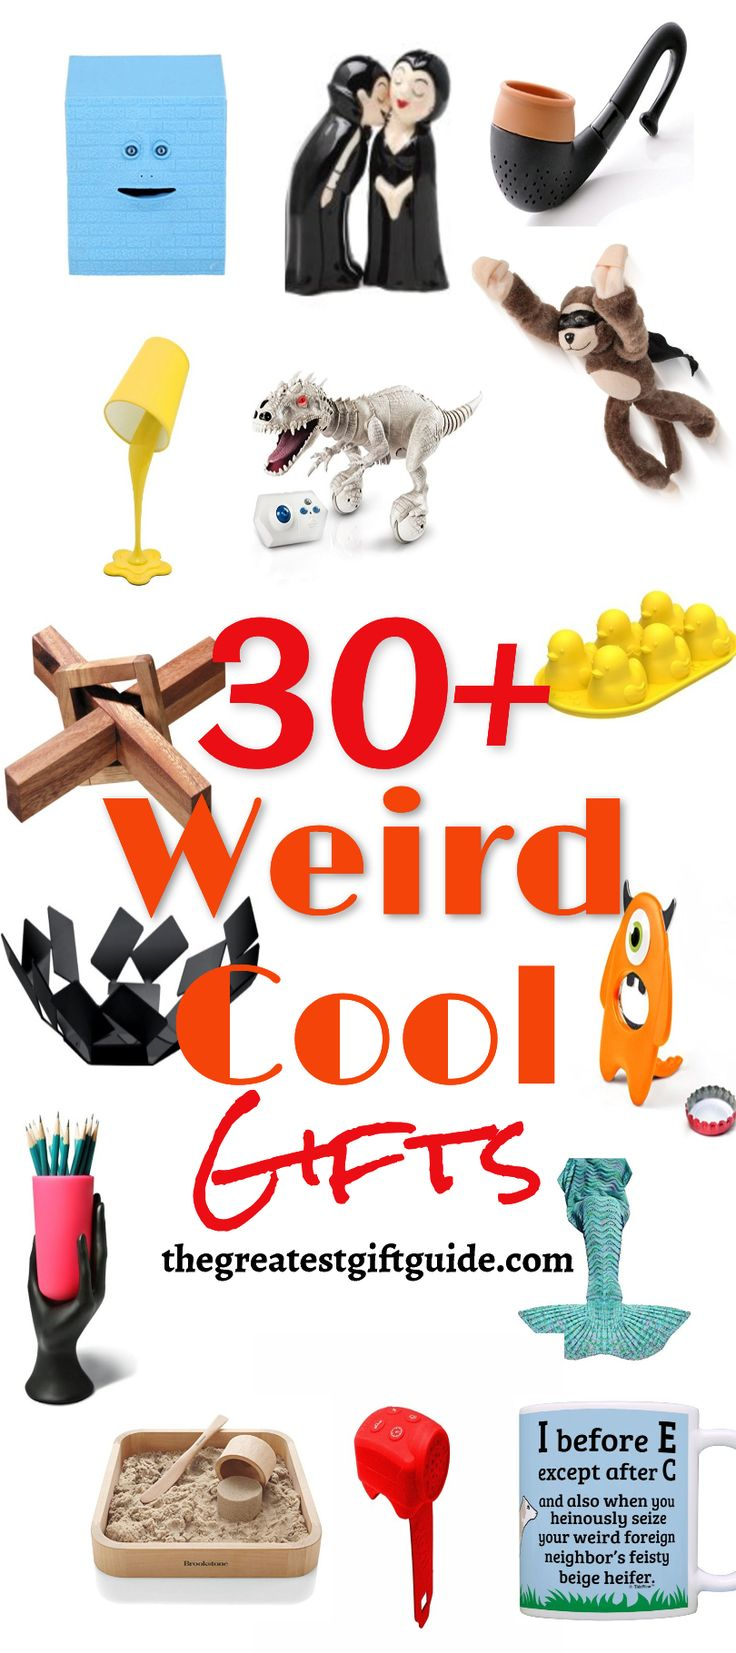 Awesome weird cool gifts - perfect for Christmas or birthdays. Lots of funny gift ideas that are weird and wonderful.